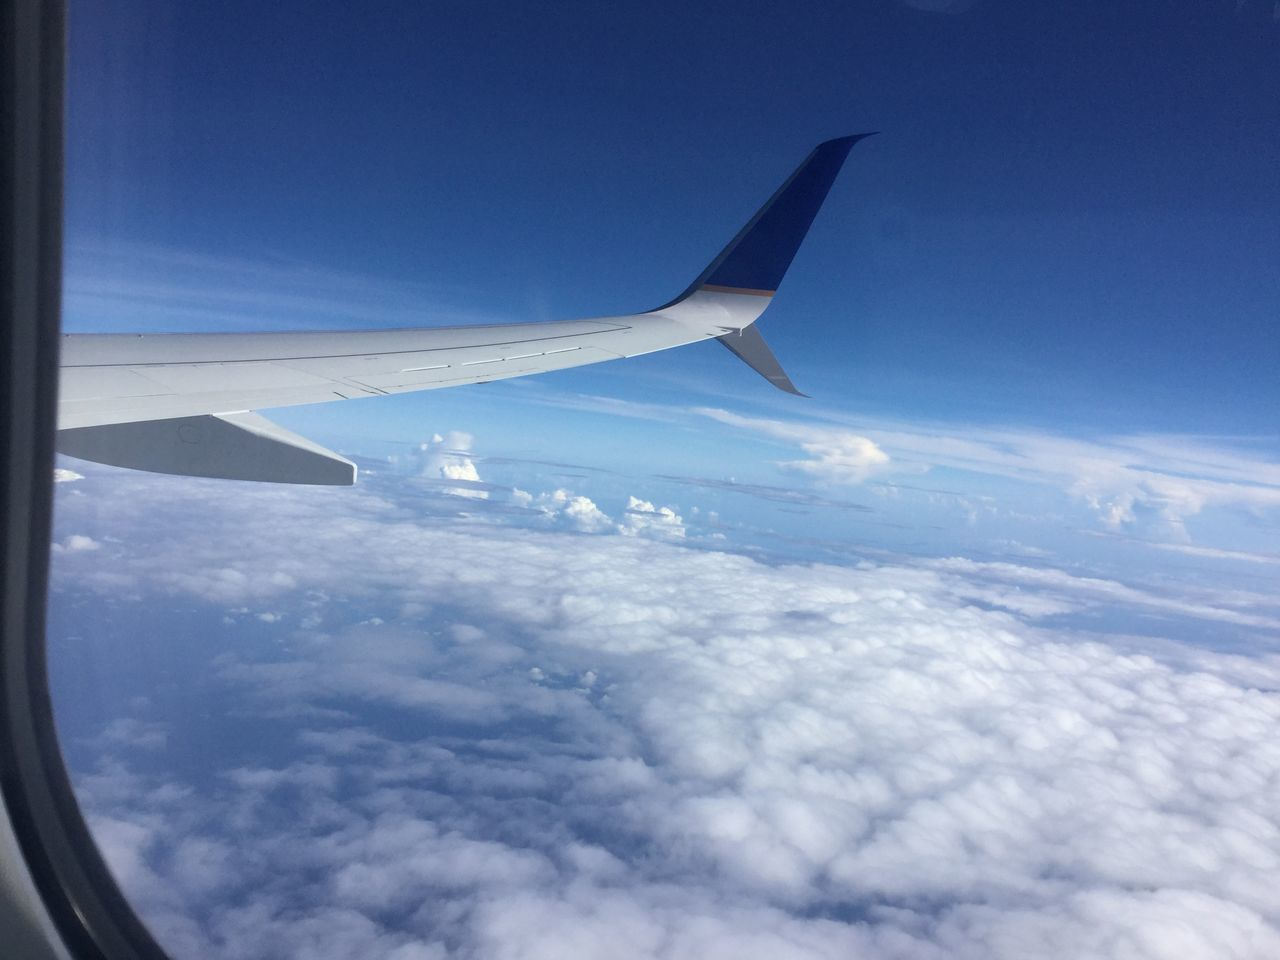 airplane, sky, transportation, airplane wing, journey, flying, nature, aerial view, travel, blue, cloud - sky, mode of transport, mid-air, cloudscape, aircraft wing, air vehicle, day, no people, beauty in nature, outdoors, scenics